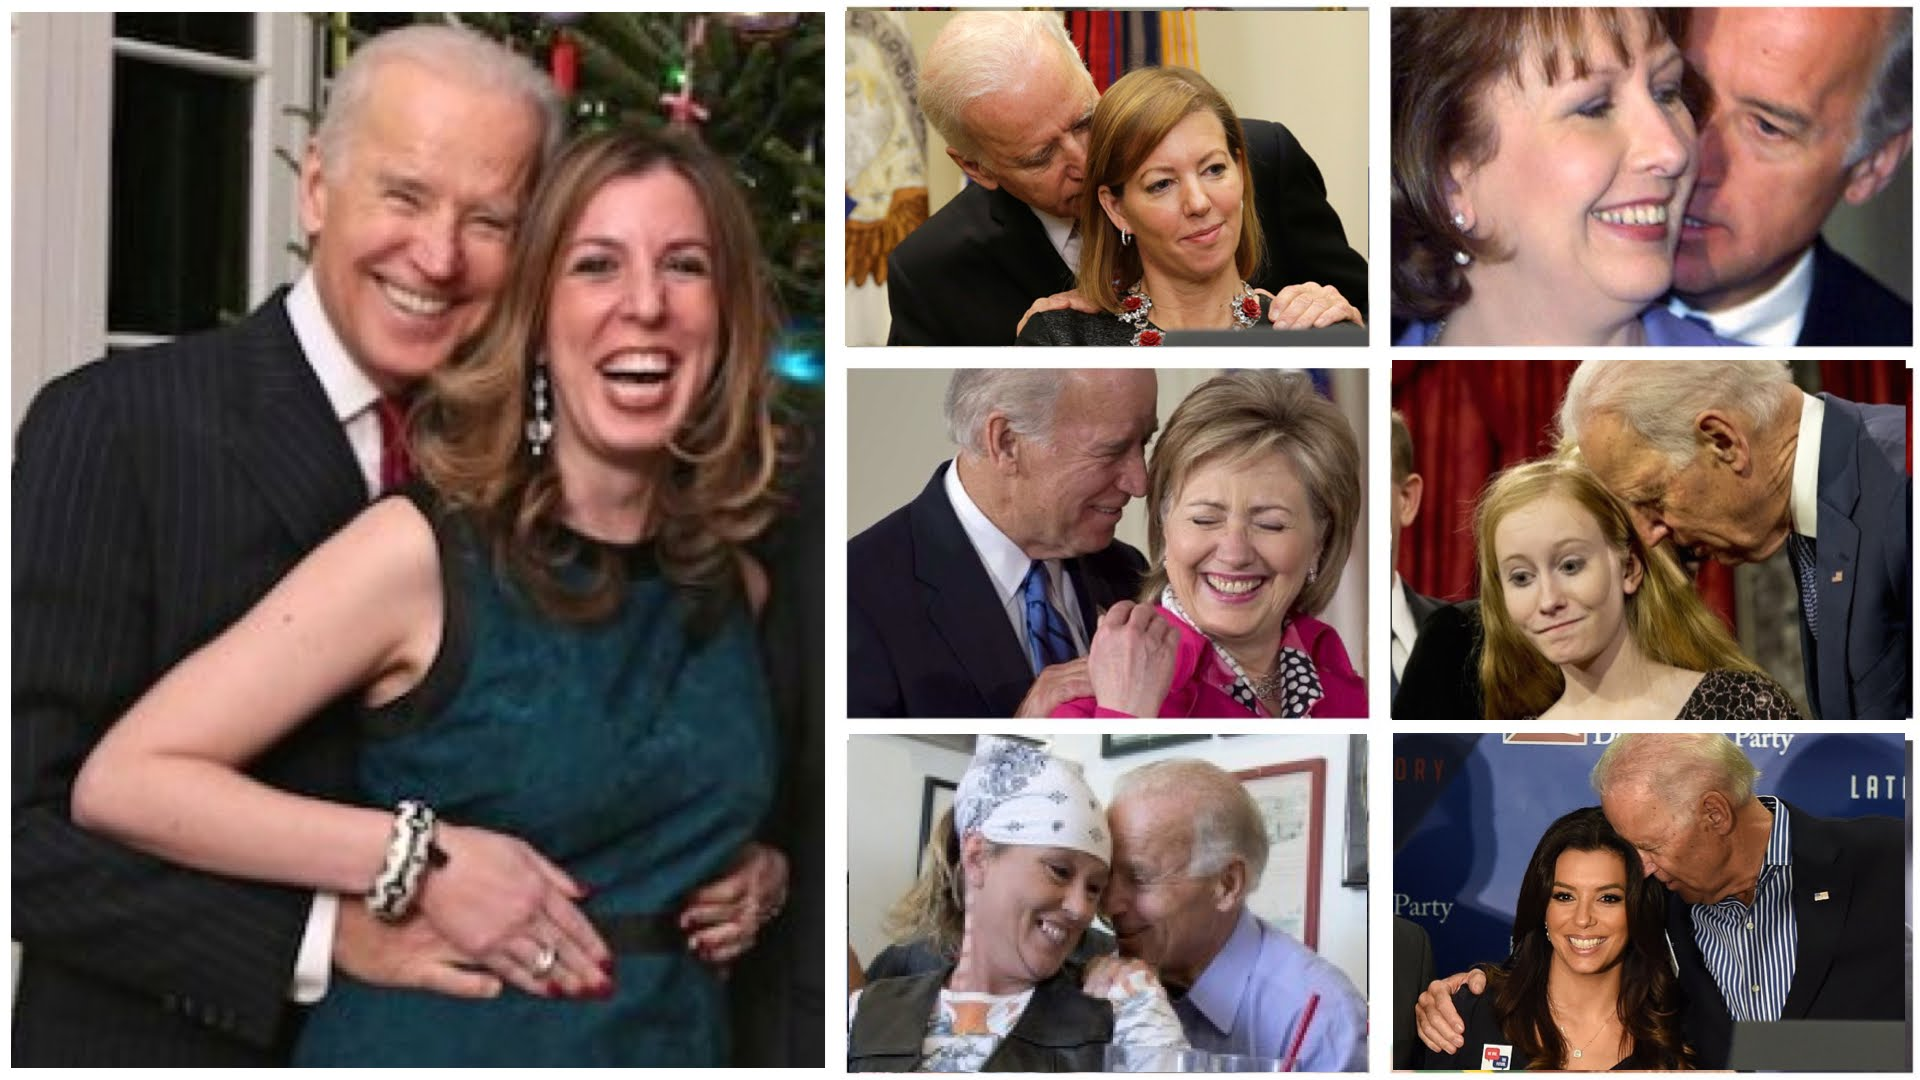 Creepy Biden Bad Touch Biden Joe Biden Pedophilia Sex Scandals